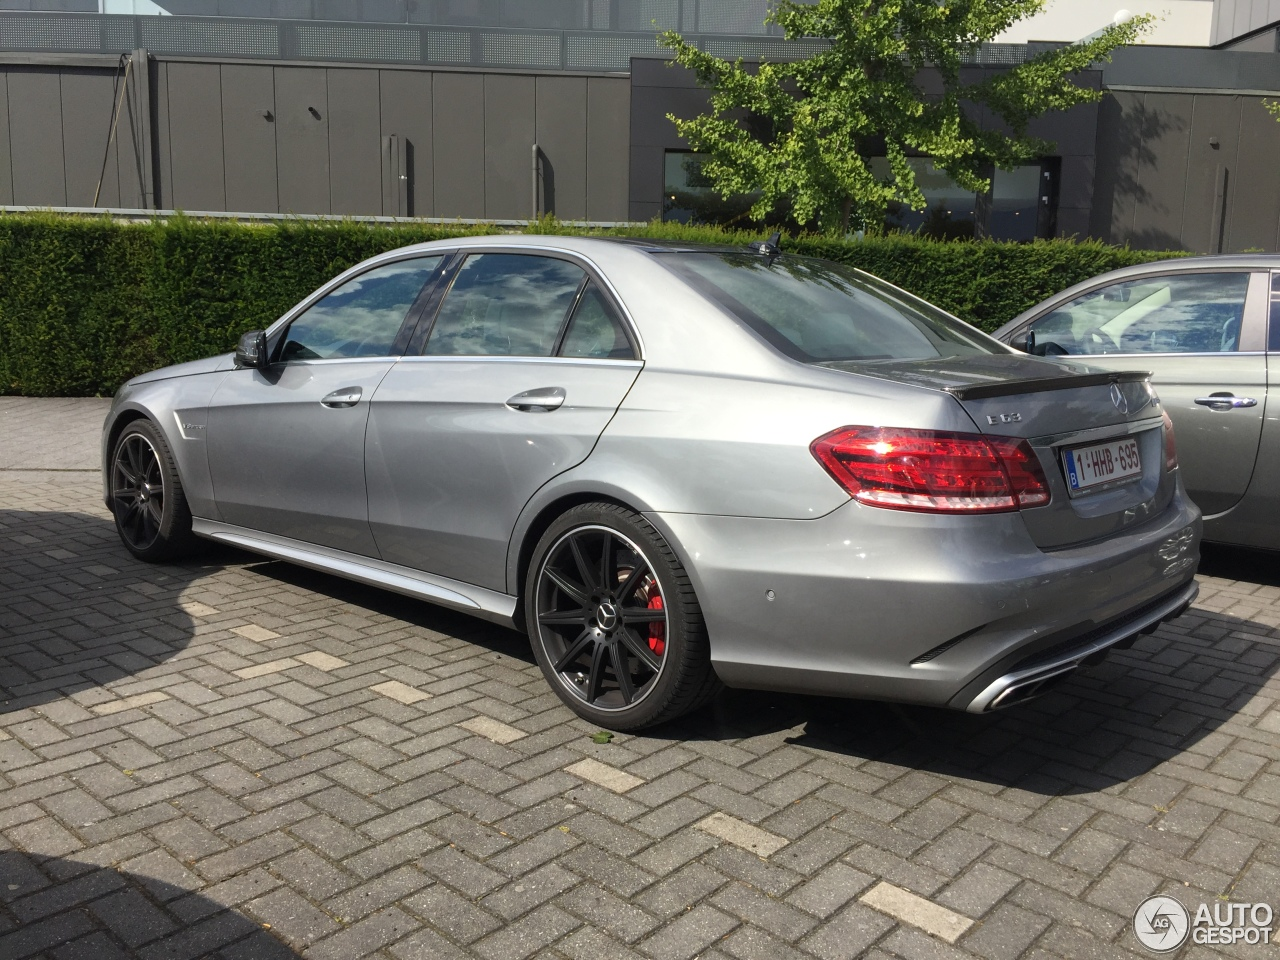 Mercedes benz e 63 amg s w212 14 july 2016 autogespot for 2016 mercedes benz amg e 63 sedan